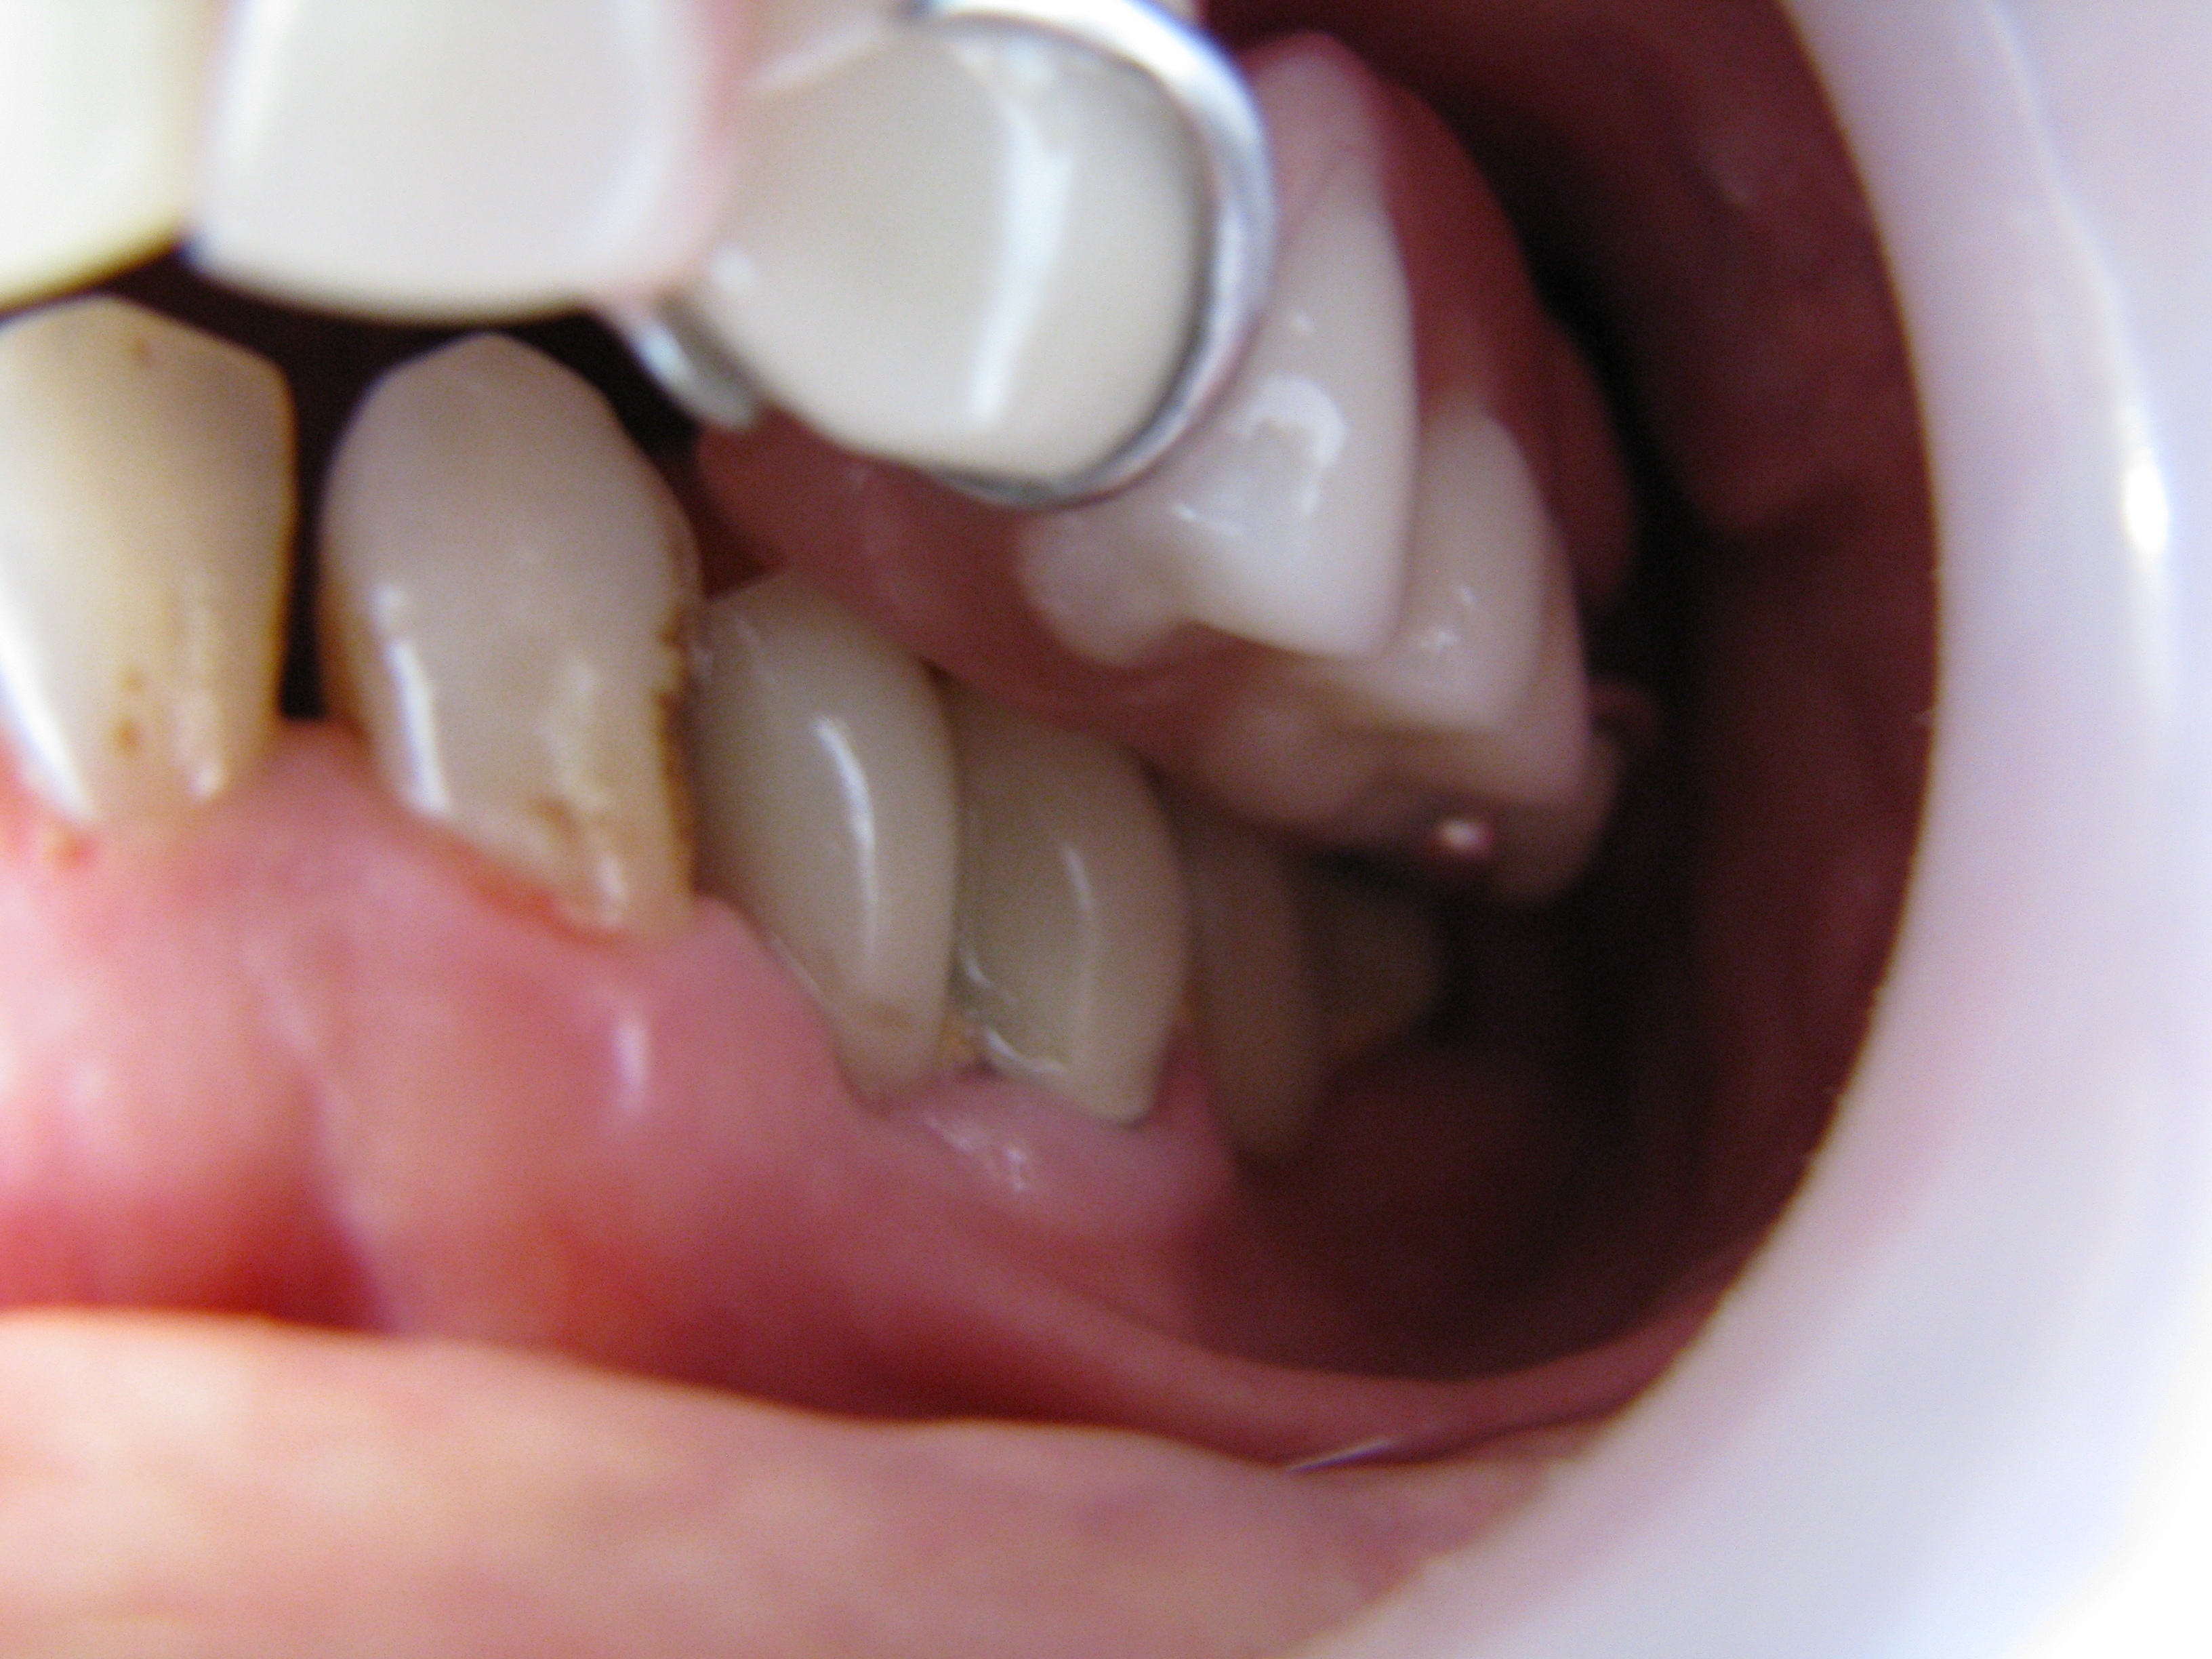 Clasp prosthesis for upper jaw